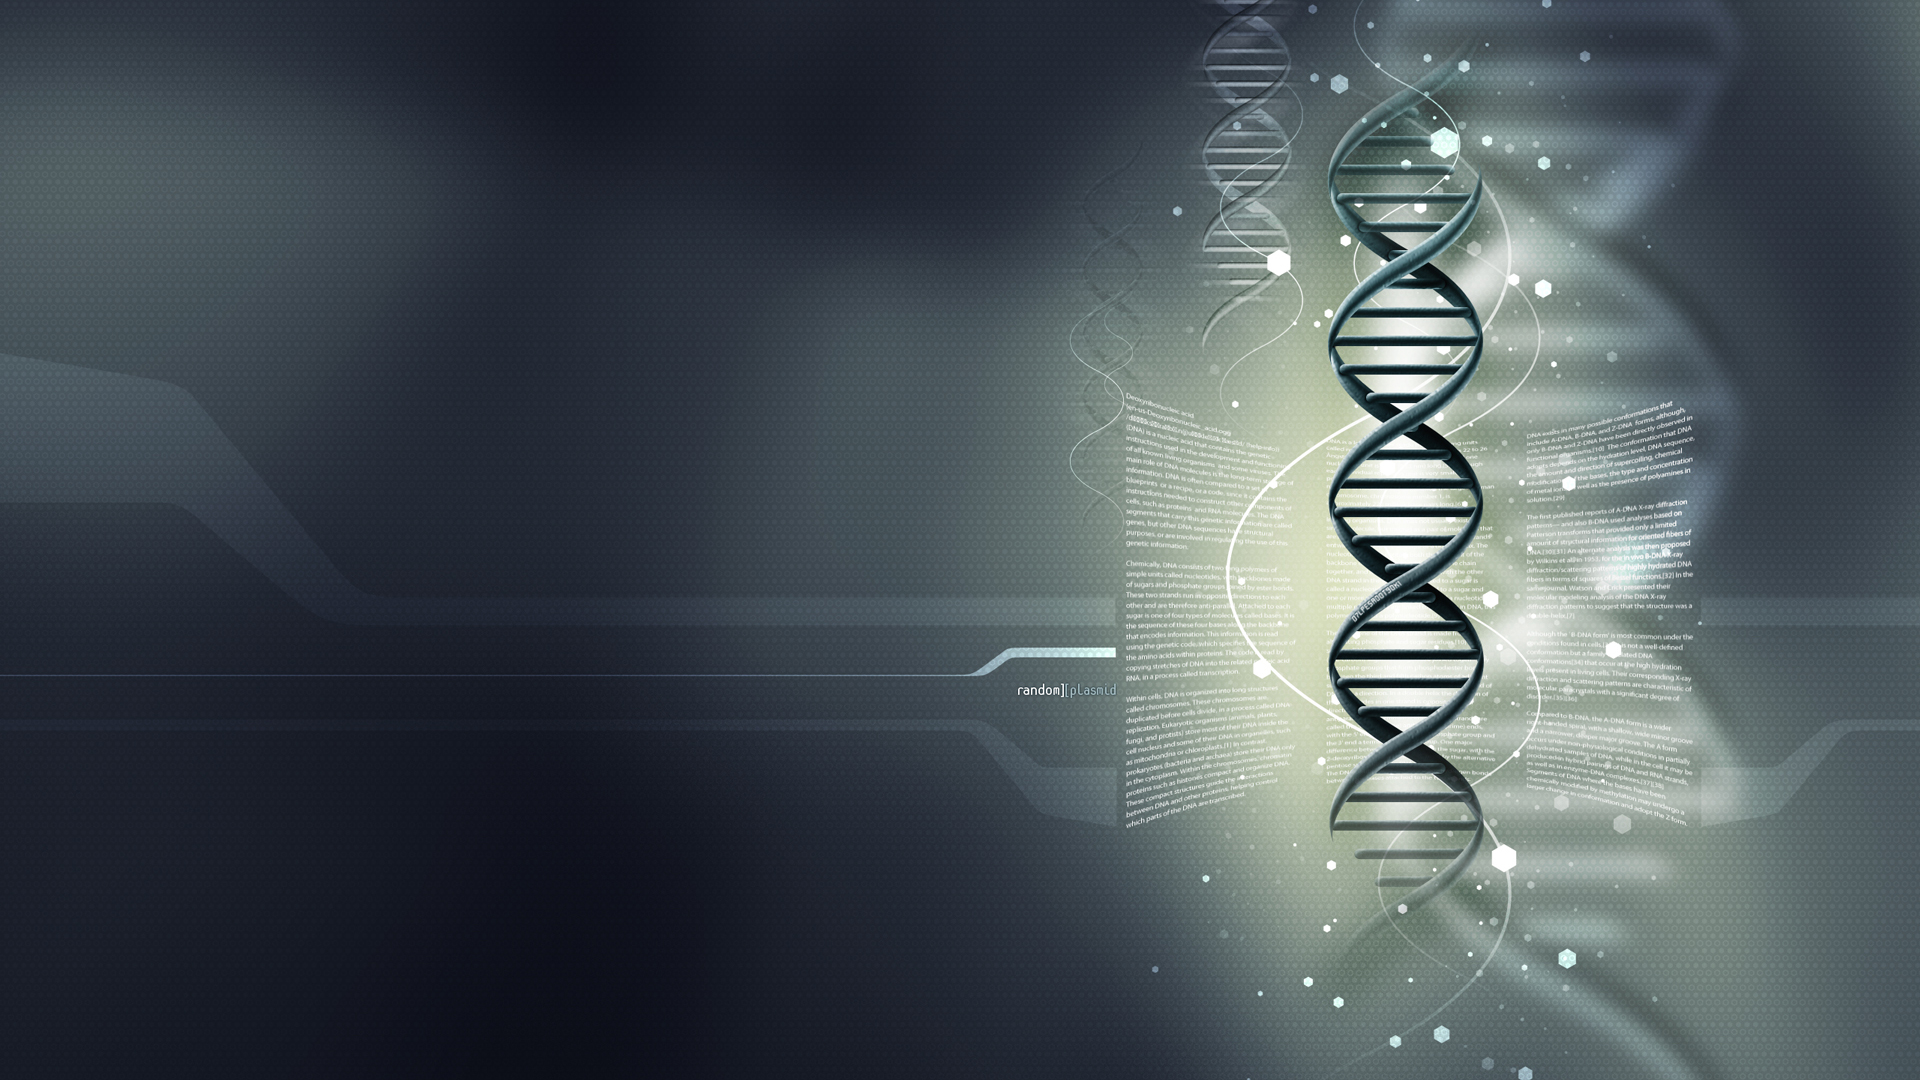 Dna double helix wallpaper wallpapersafari for Where to get wallpaper